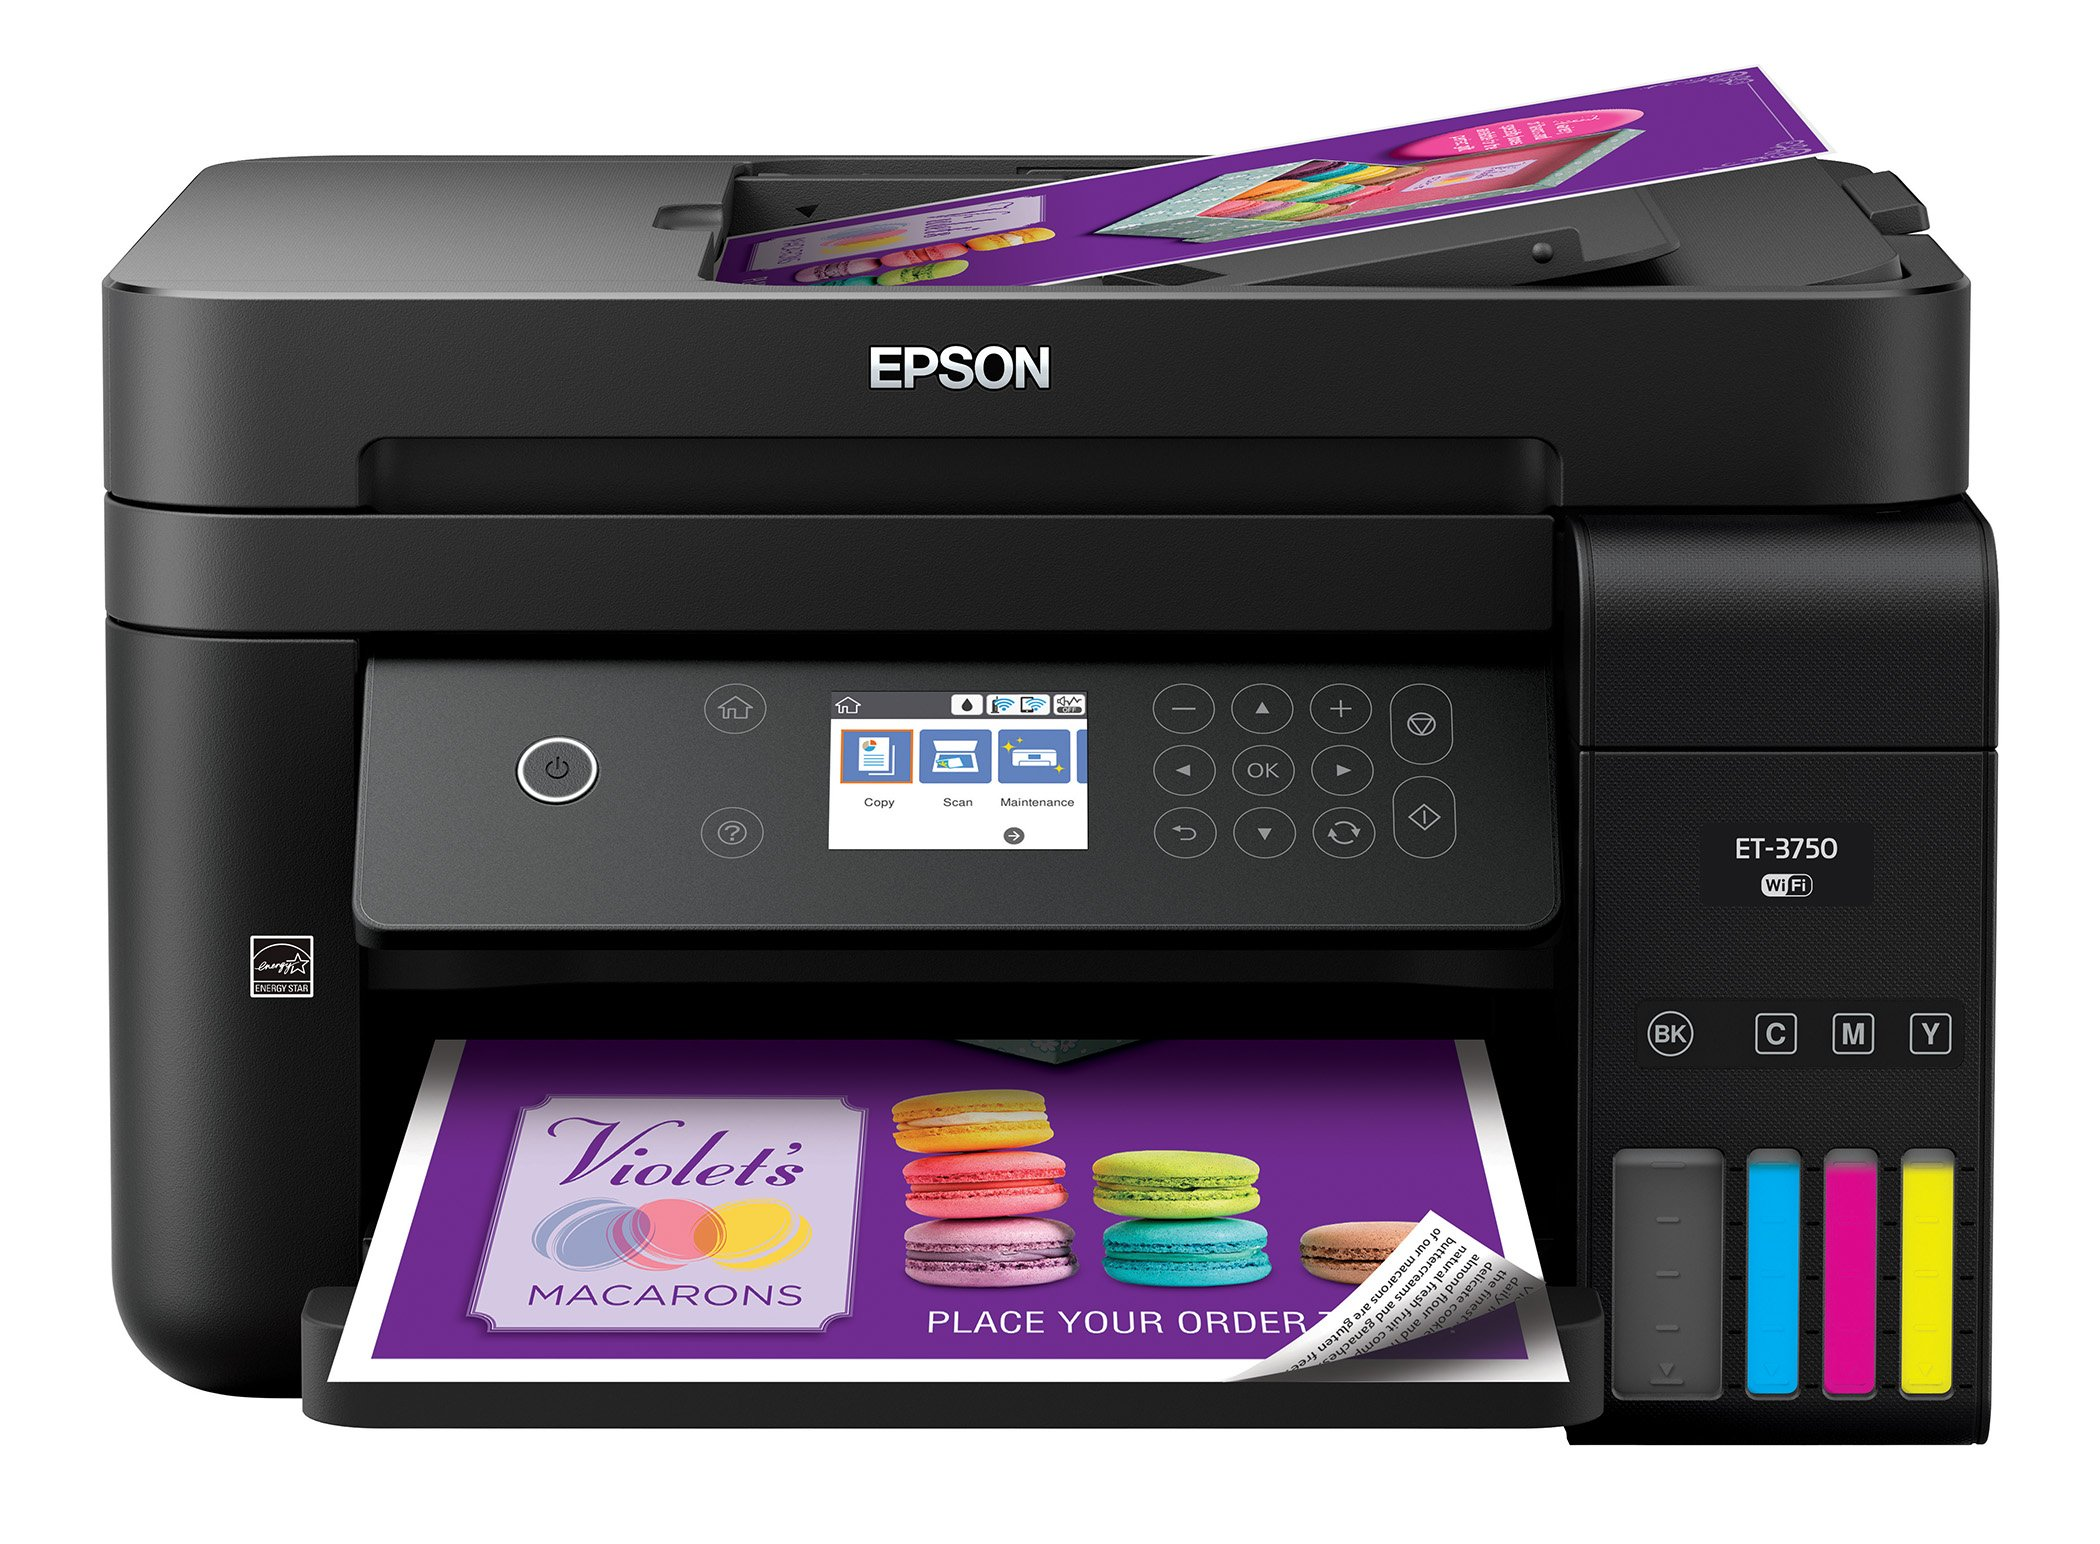 Epson Workforce ET-3750 EcoTank Wireless Color All-in-One Supertank Printer with Scanner, Copier and Ethernet (Renewed) by Epson (Image #7)